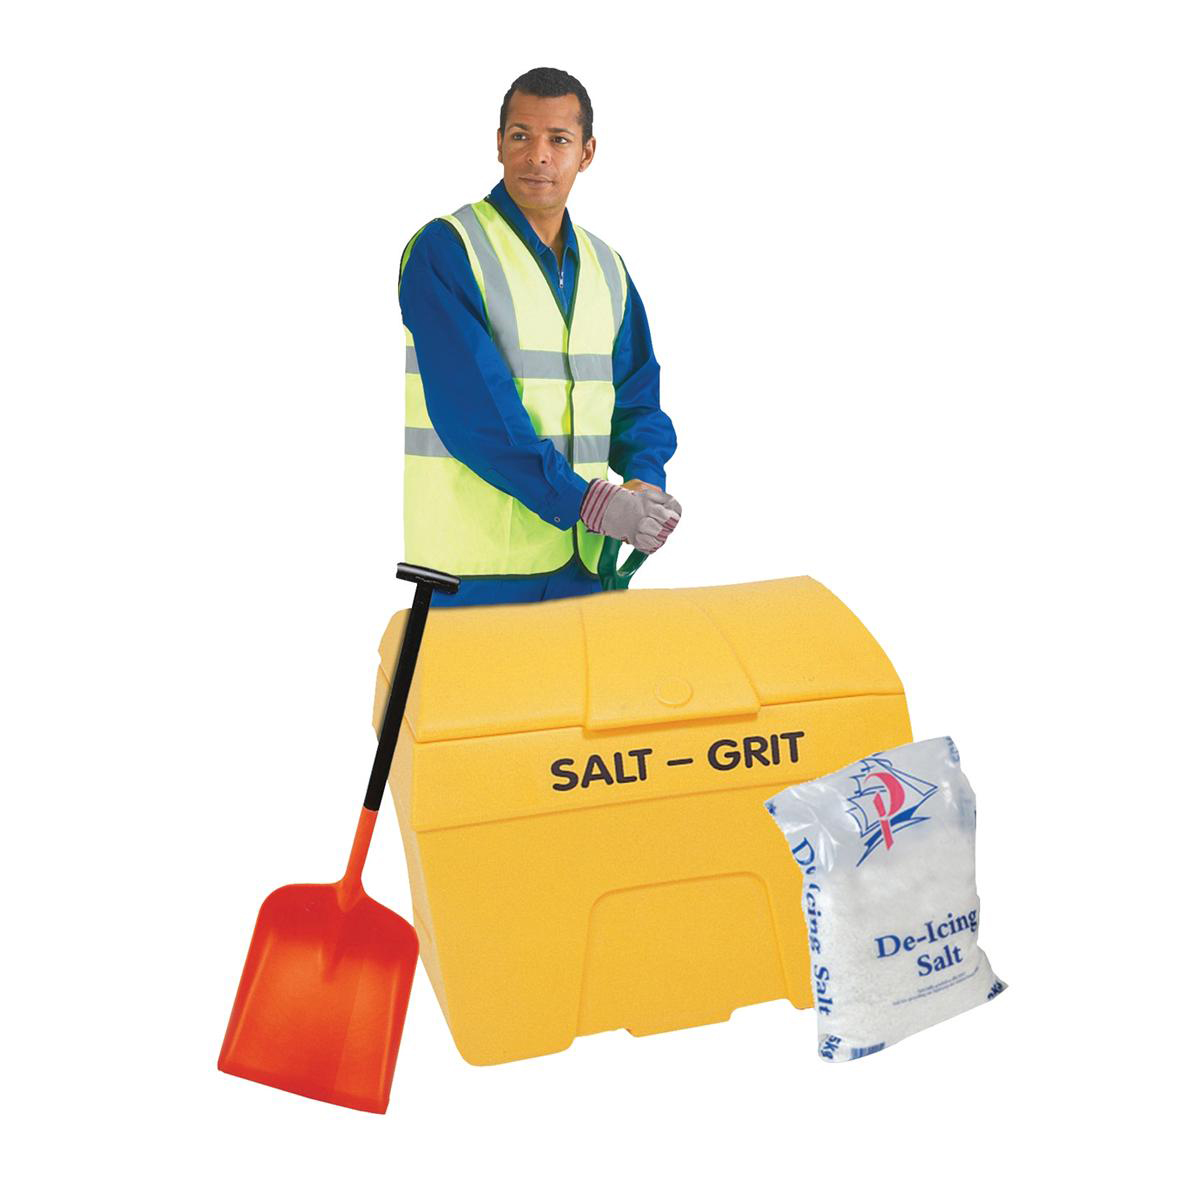 Grit Bins & Accessories Winter Kit Salt Bin Starter Kit Yellow 200 Litre with Salt Bag White 2 x 25kg Shovel Gloves Hi-Vis Jacket